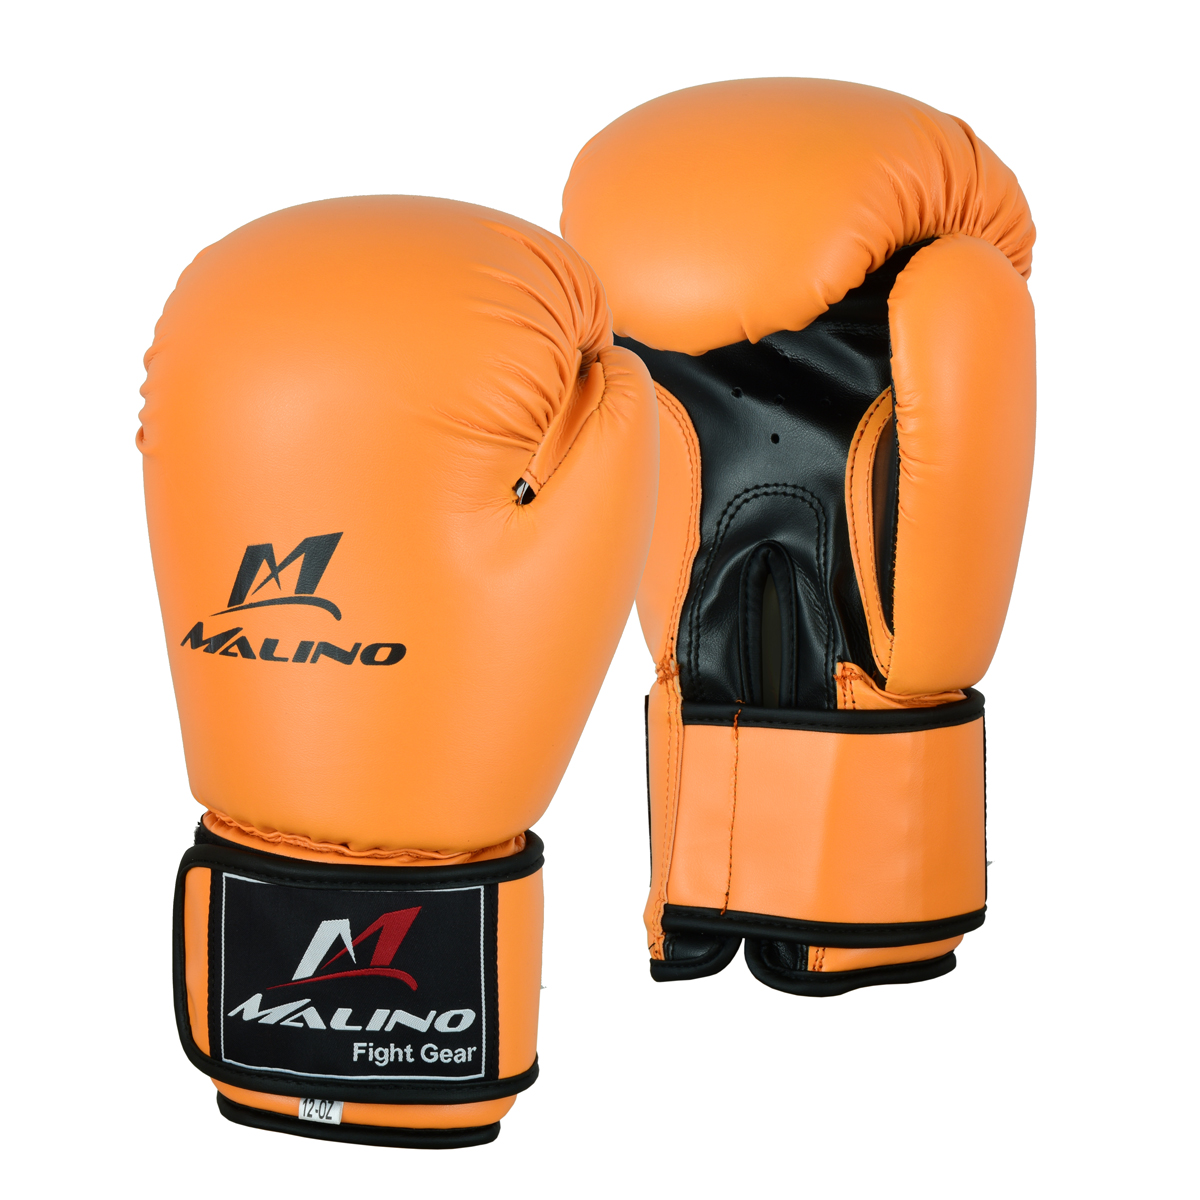 Boxing Gloves for Men Orange-Black